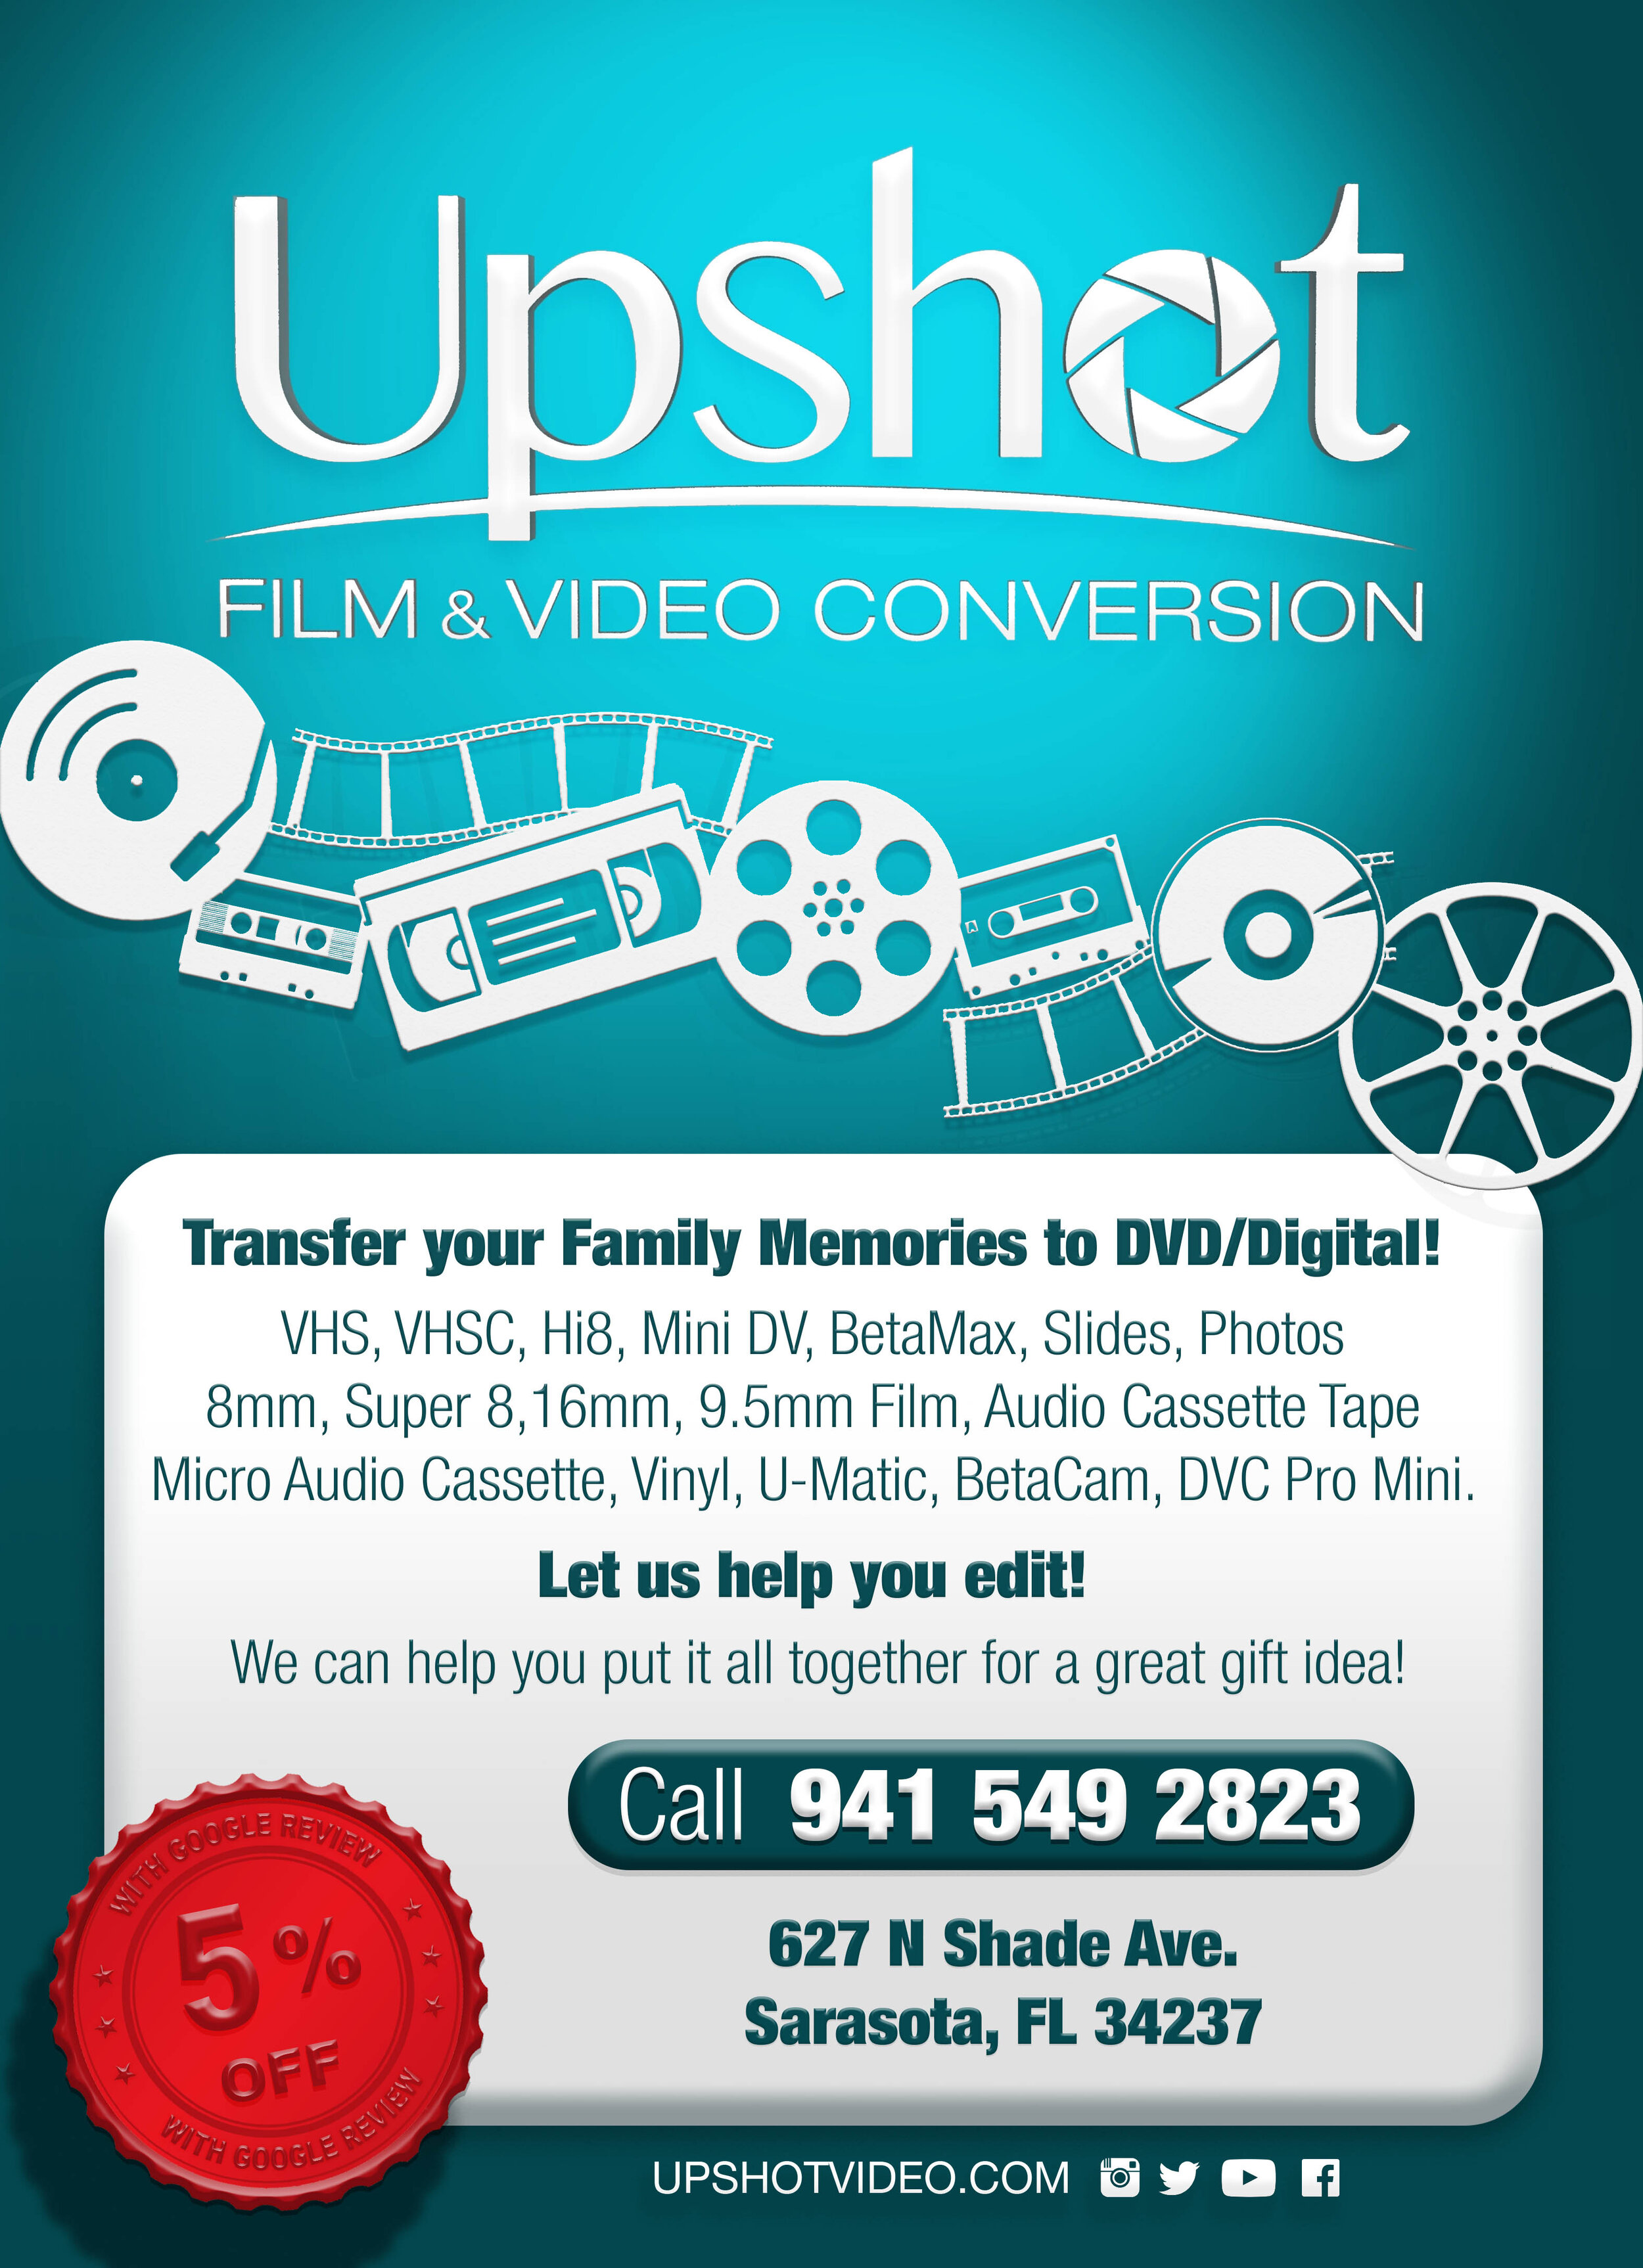 Upshot Video Productions Vhs To Dvd In House Video Transfer Service Based In Sarasota Fl Also Super 8 To Dvd 8mm To Dvd Hi8 To Dvd Mini Dv To Dvd